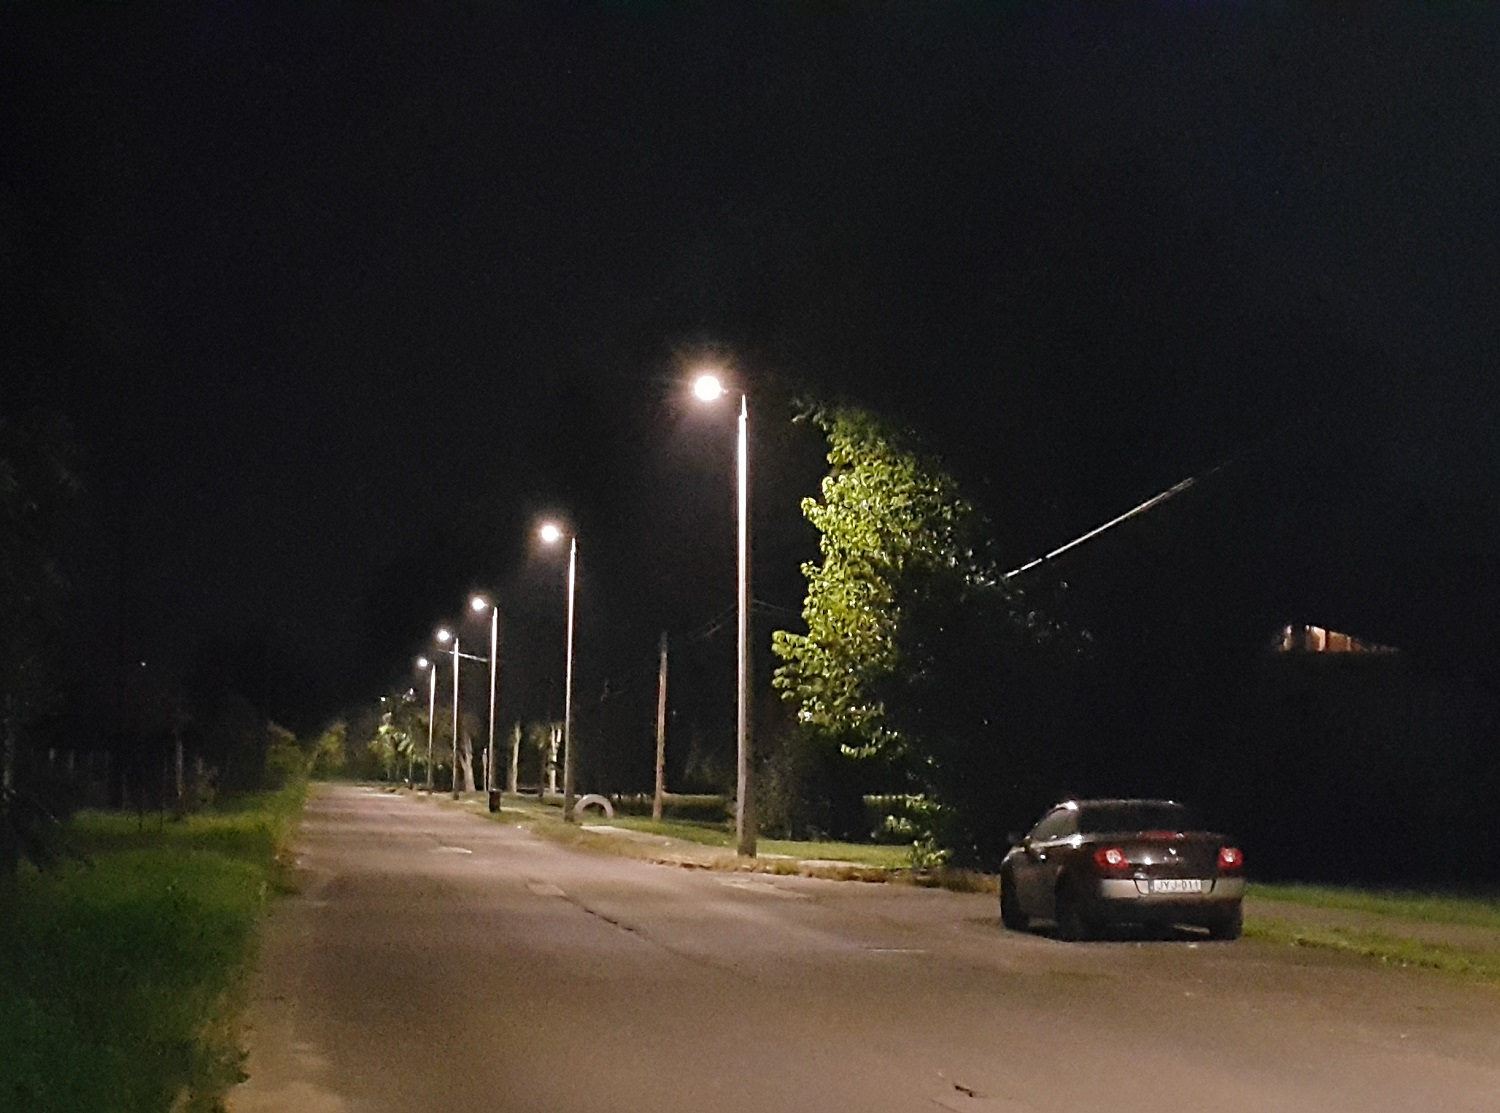 Budapest completes first phase of LED street light replacement - LUCI Association